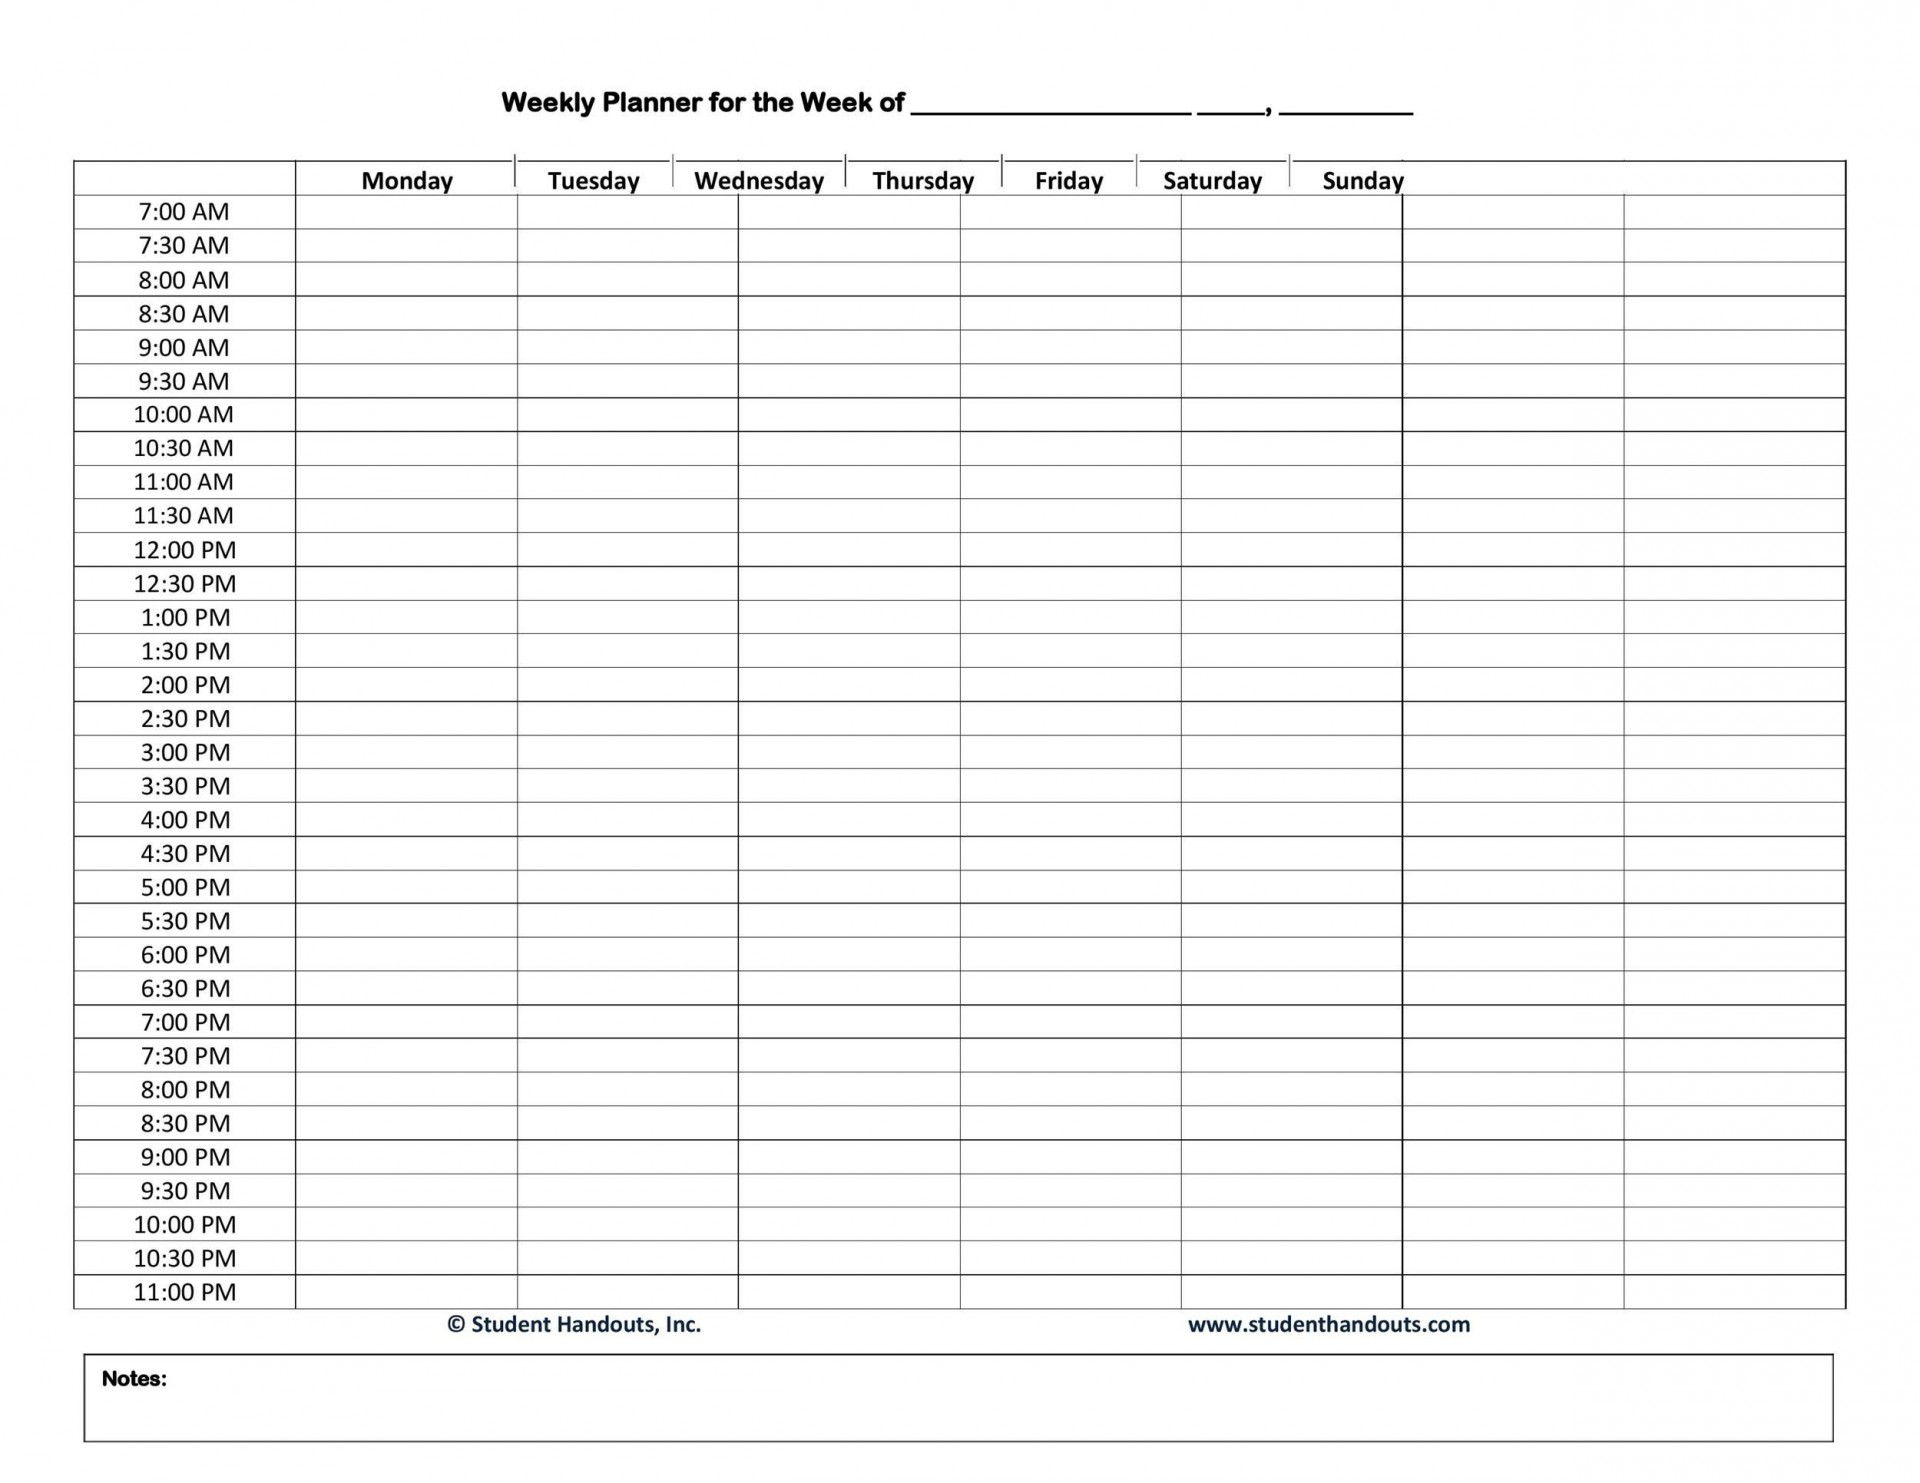 005 Exceptional Daily Hourly Schedule Template Word Concept 1920